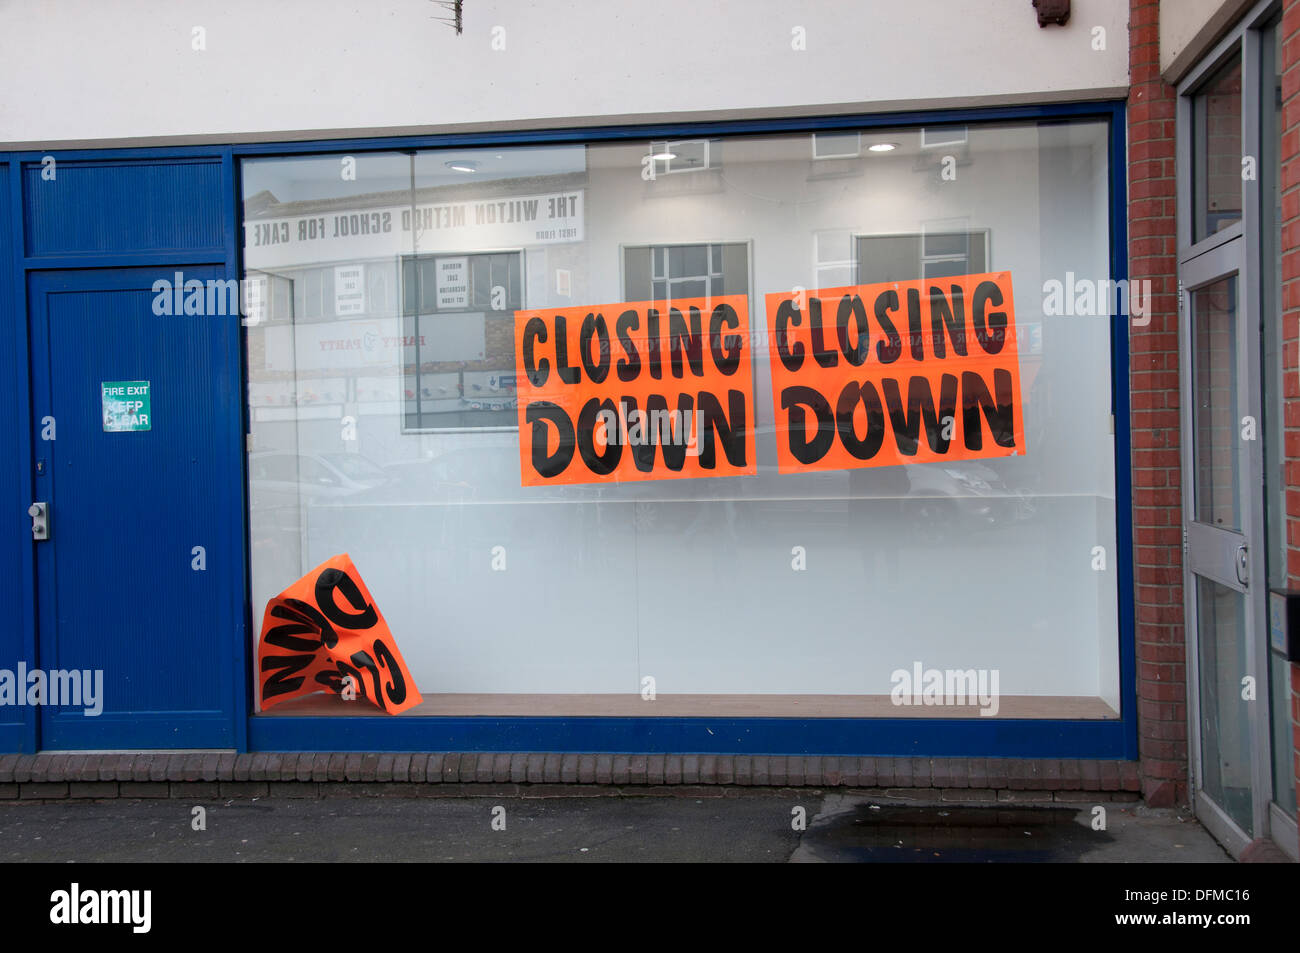 Hackney, London 2013. Ridley Road former police station with sign saying 'Closing Down'. - Stock Image